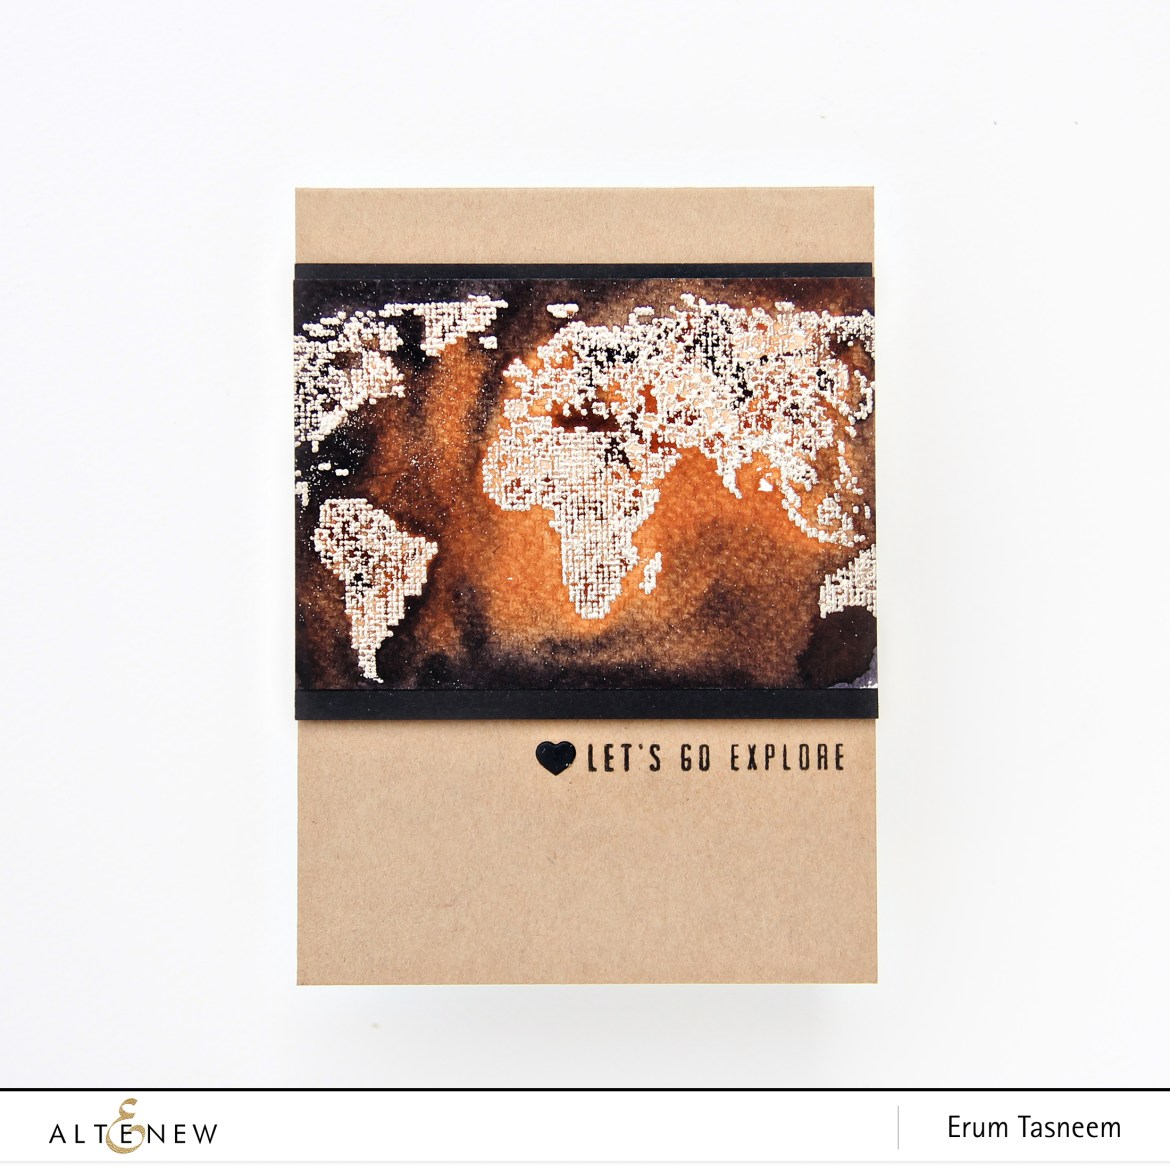 Altenew World Map Stamp Set | Watercolor Brush Markers | Erum Tasneem | @pr0digy0